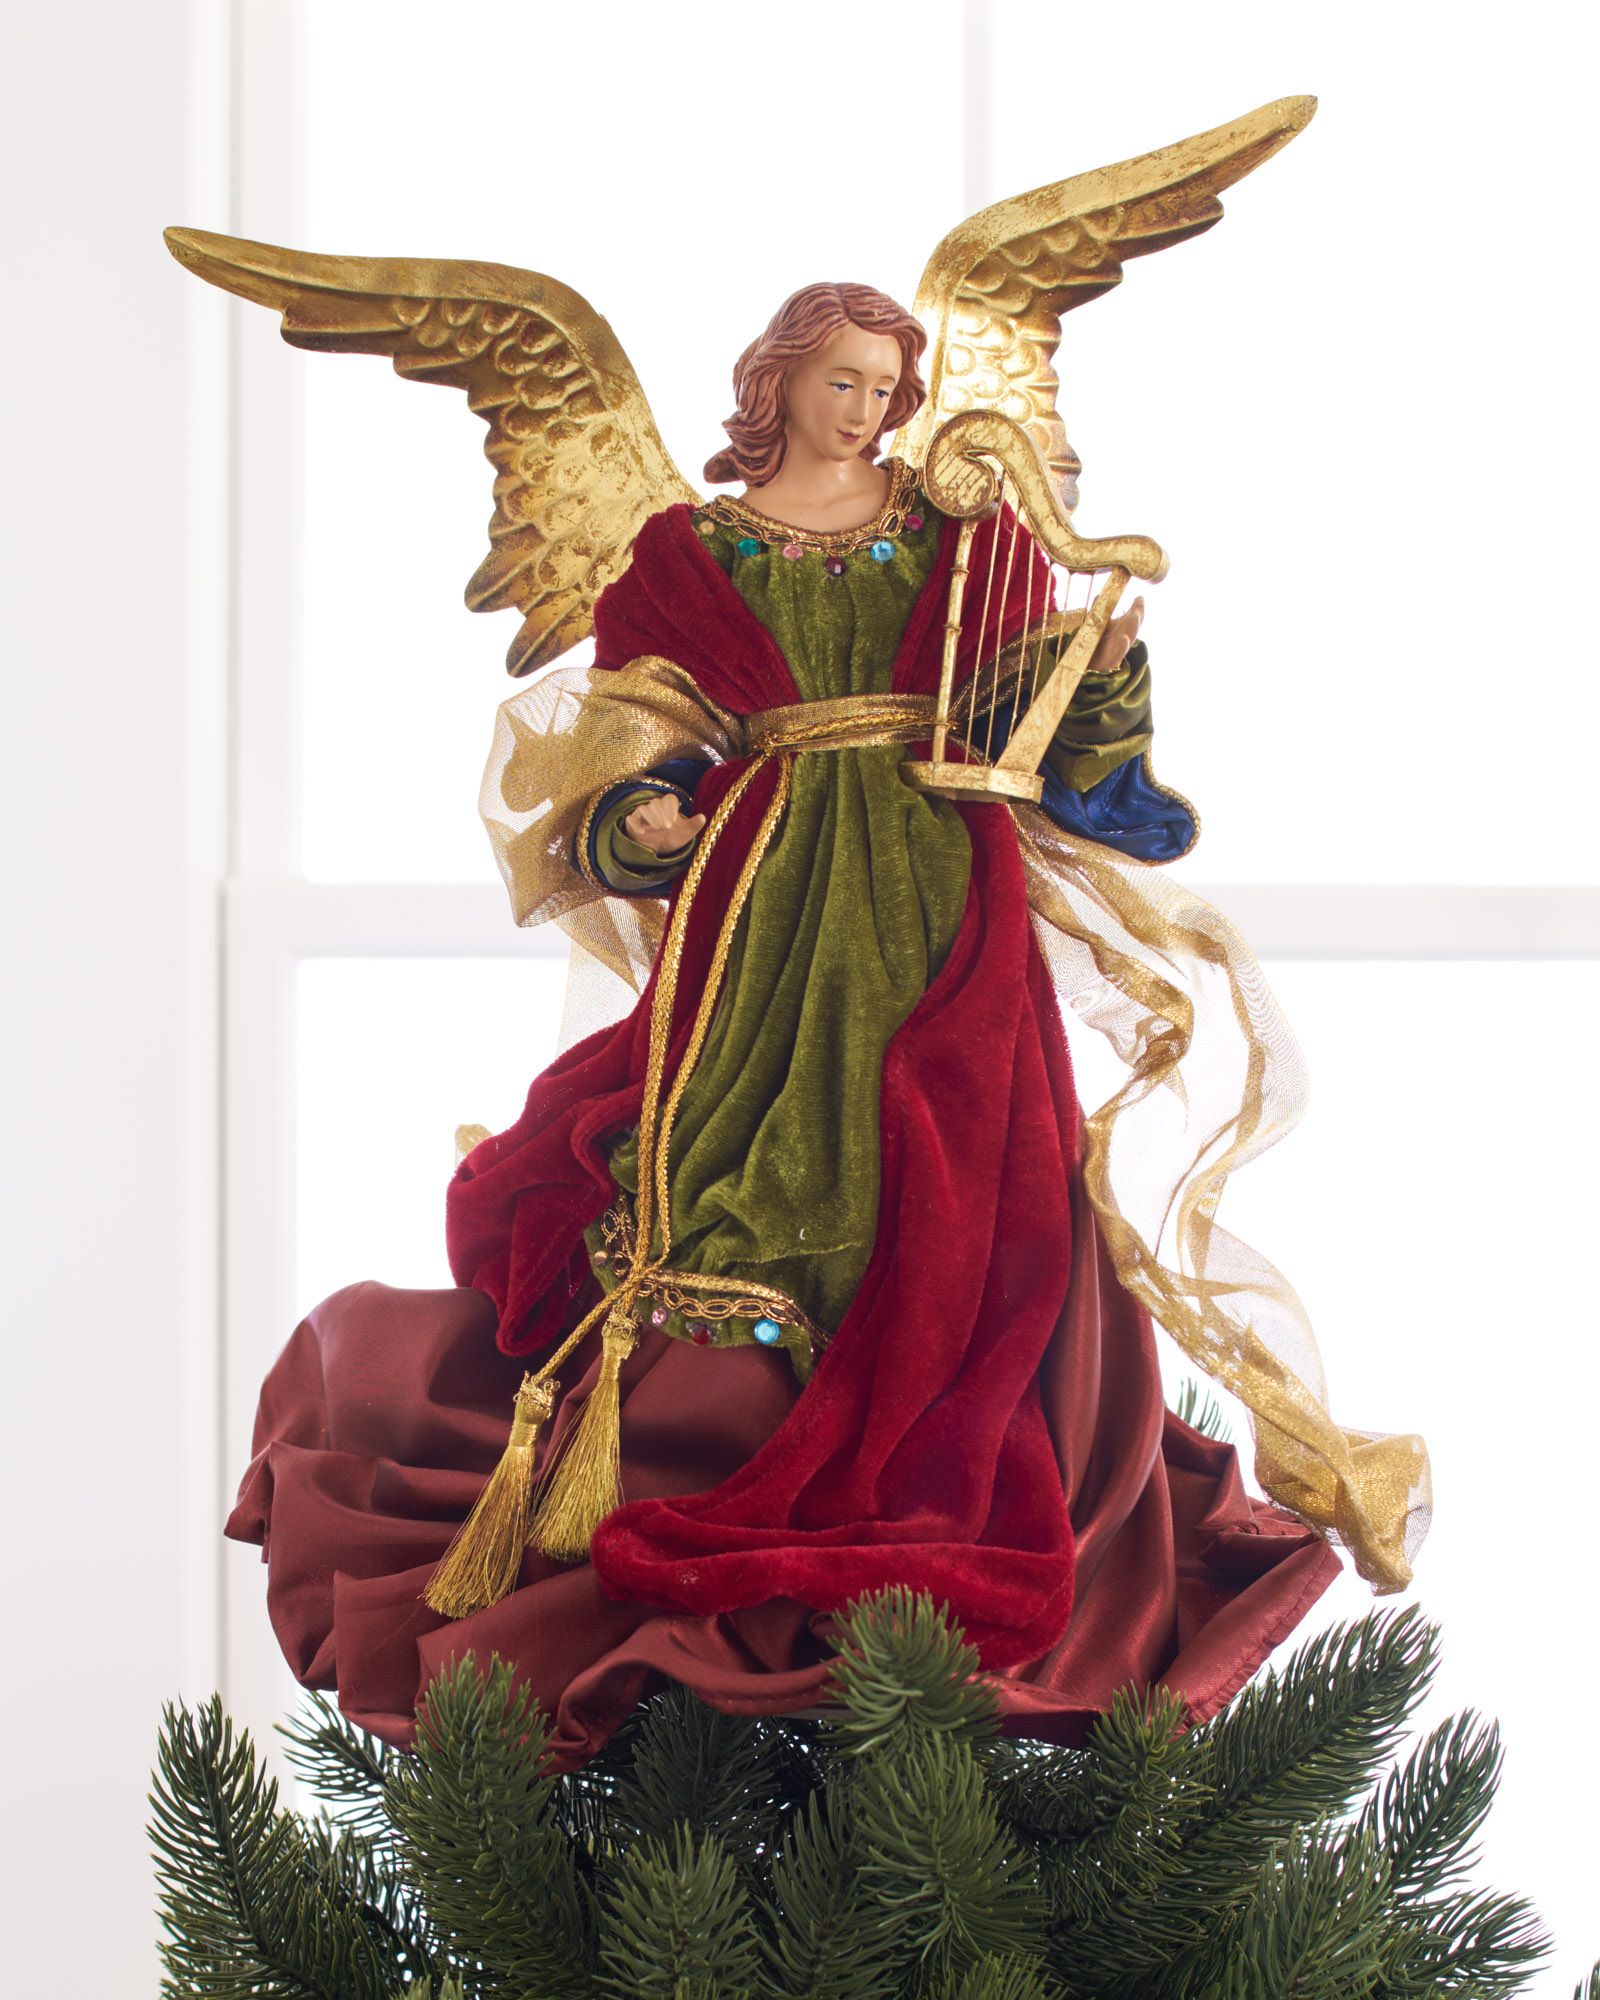 balsam hills christmas angel tree topper captures the essence of the kindly figure from which it - Christmas Angel Tree